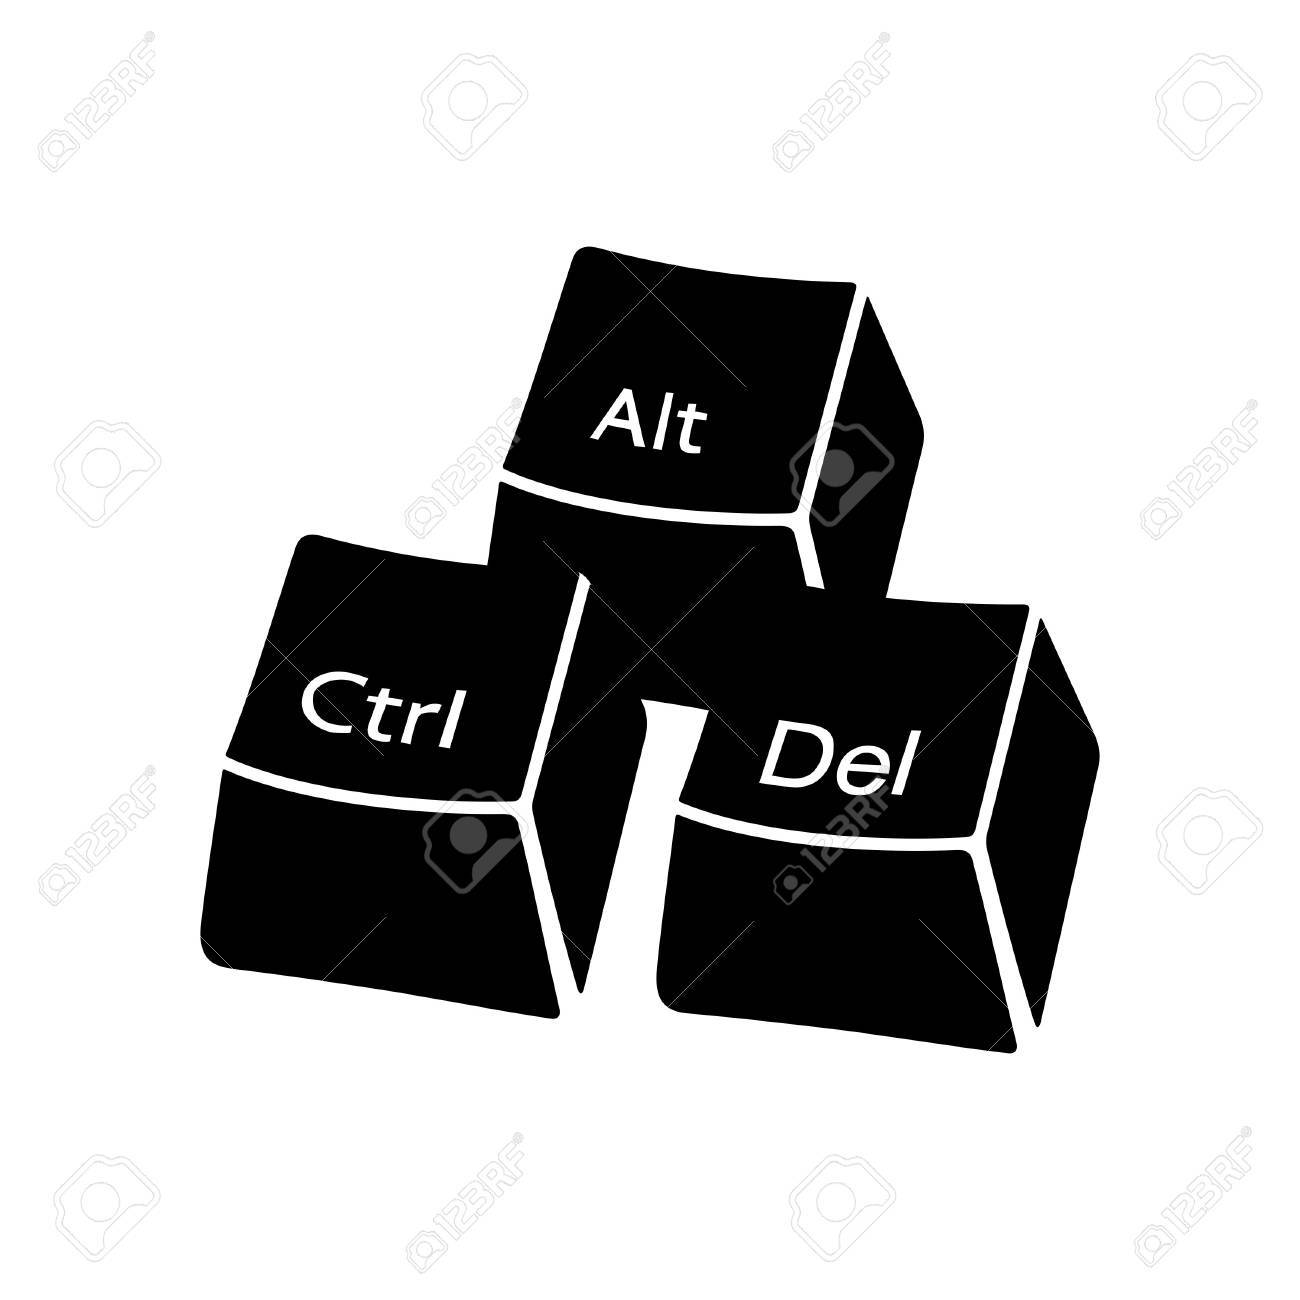 Ctrl alt del buttons royalty free cliparts vectors and stock ctrl alt del buttons stock vector 71247829 biocorpaavc Choice Image